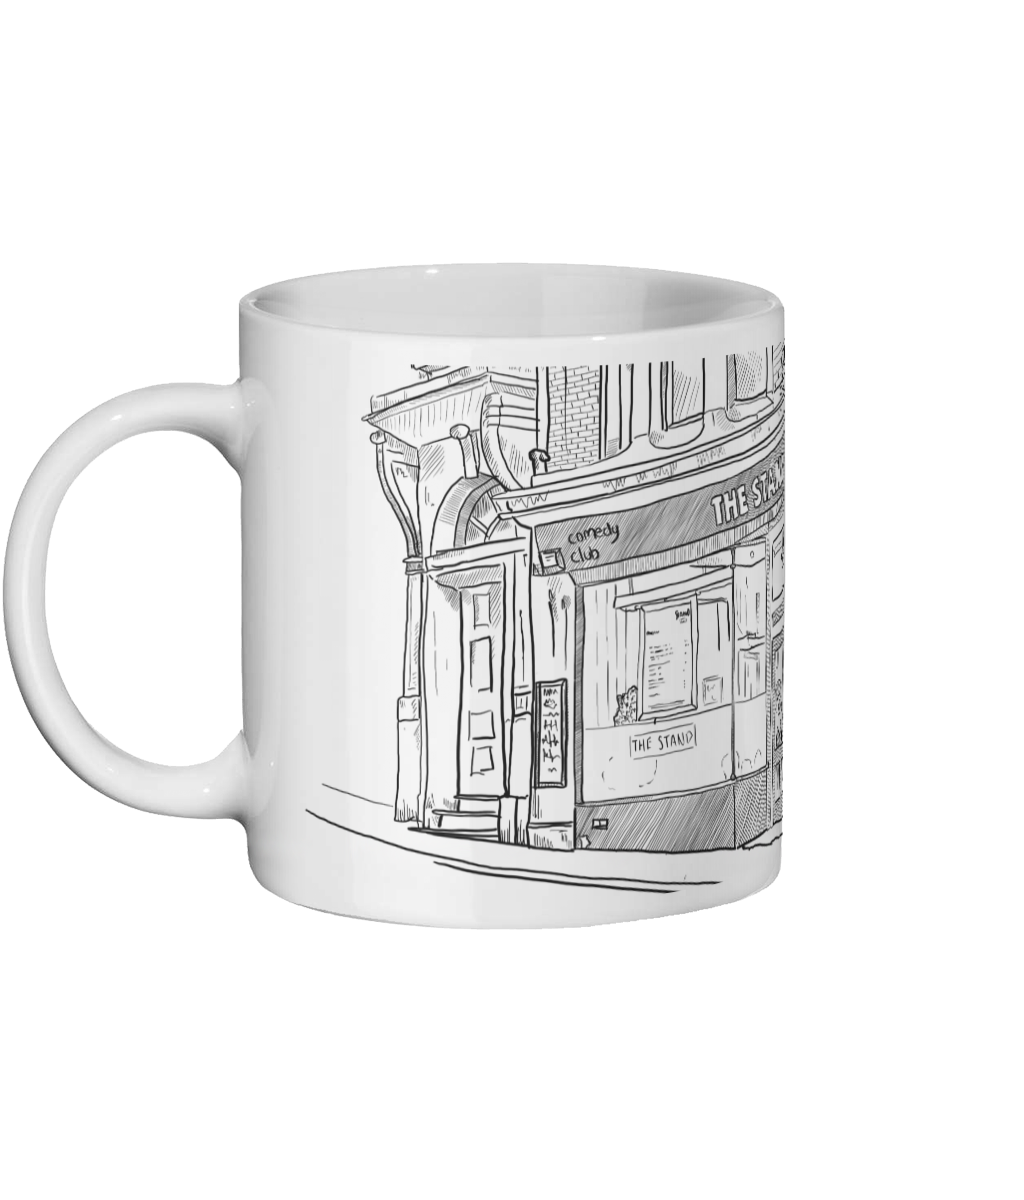 Matt Reed Illustration | Mug | The Stand Newcastle